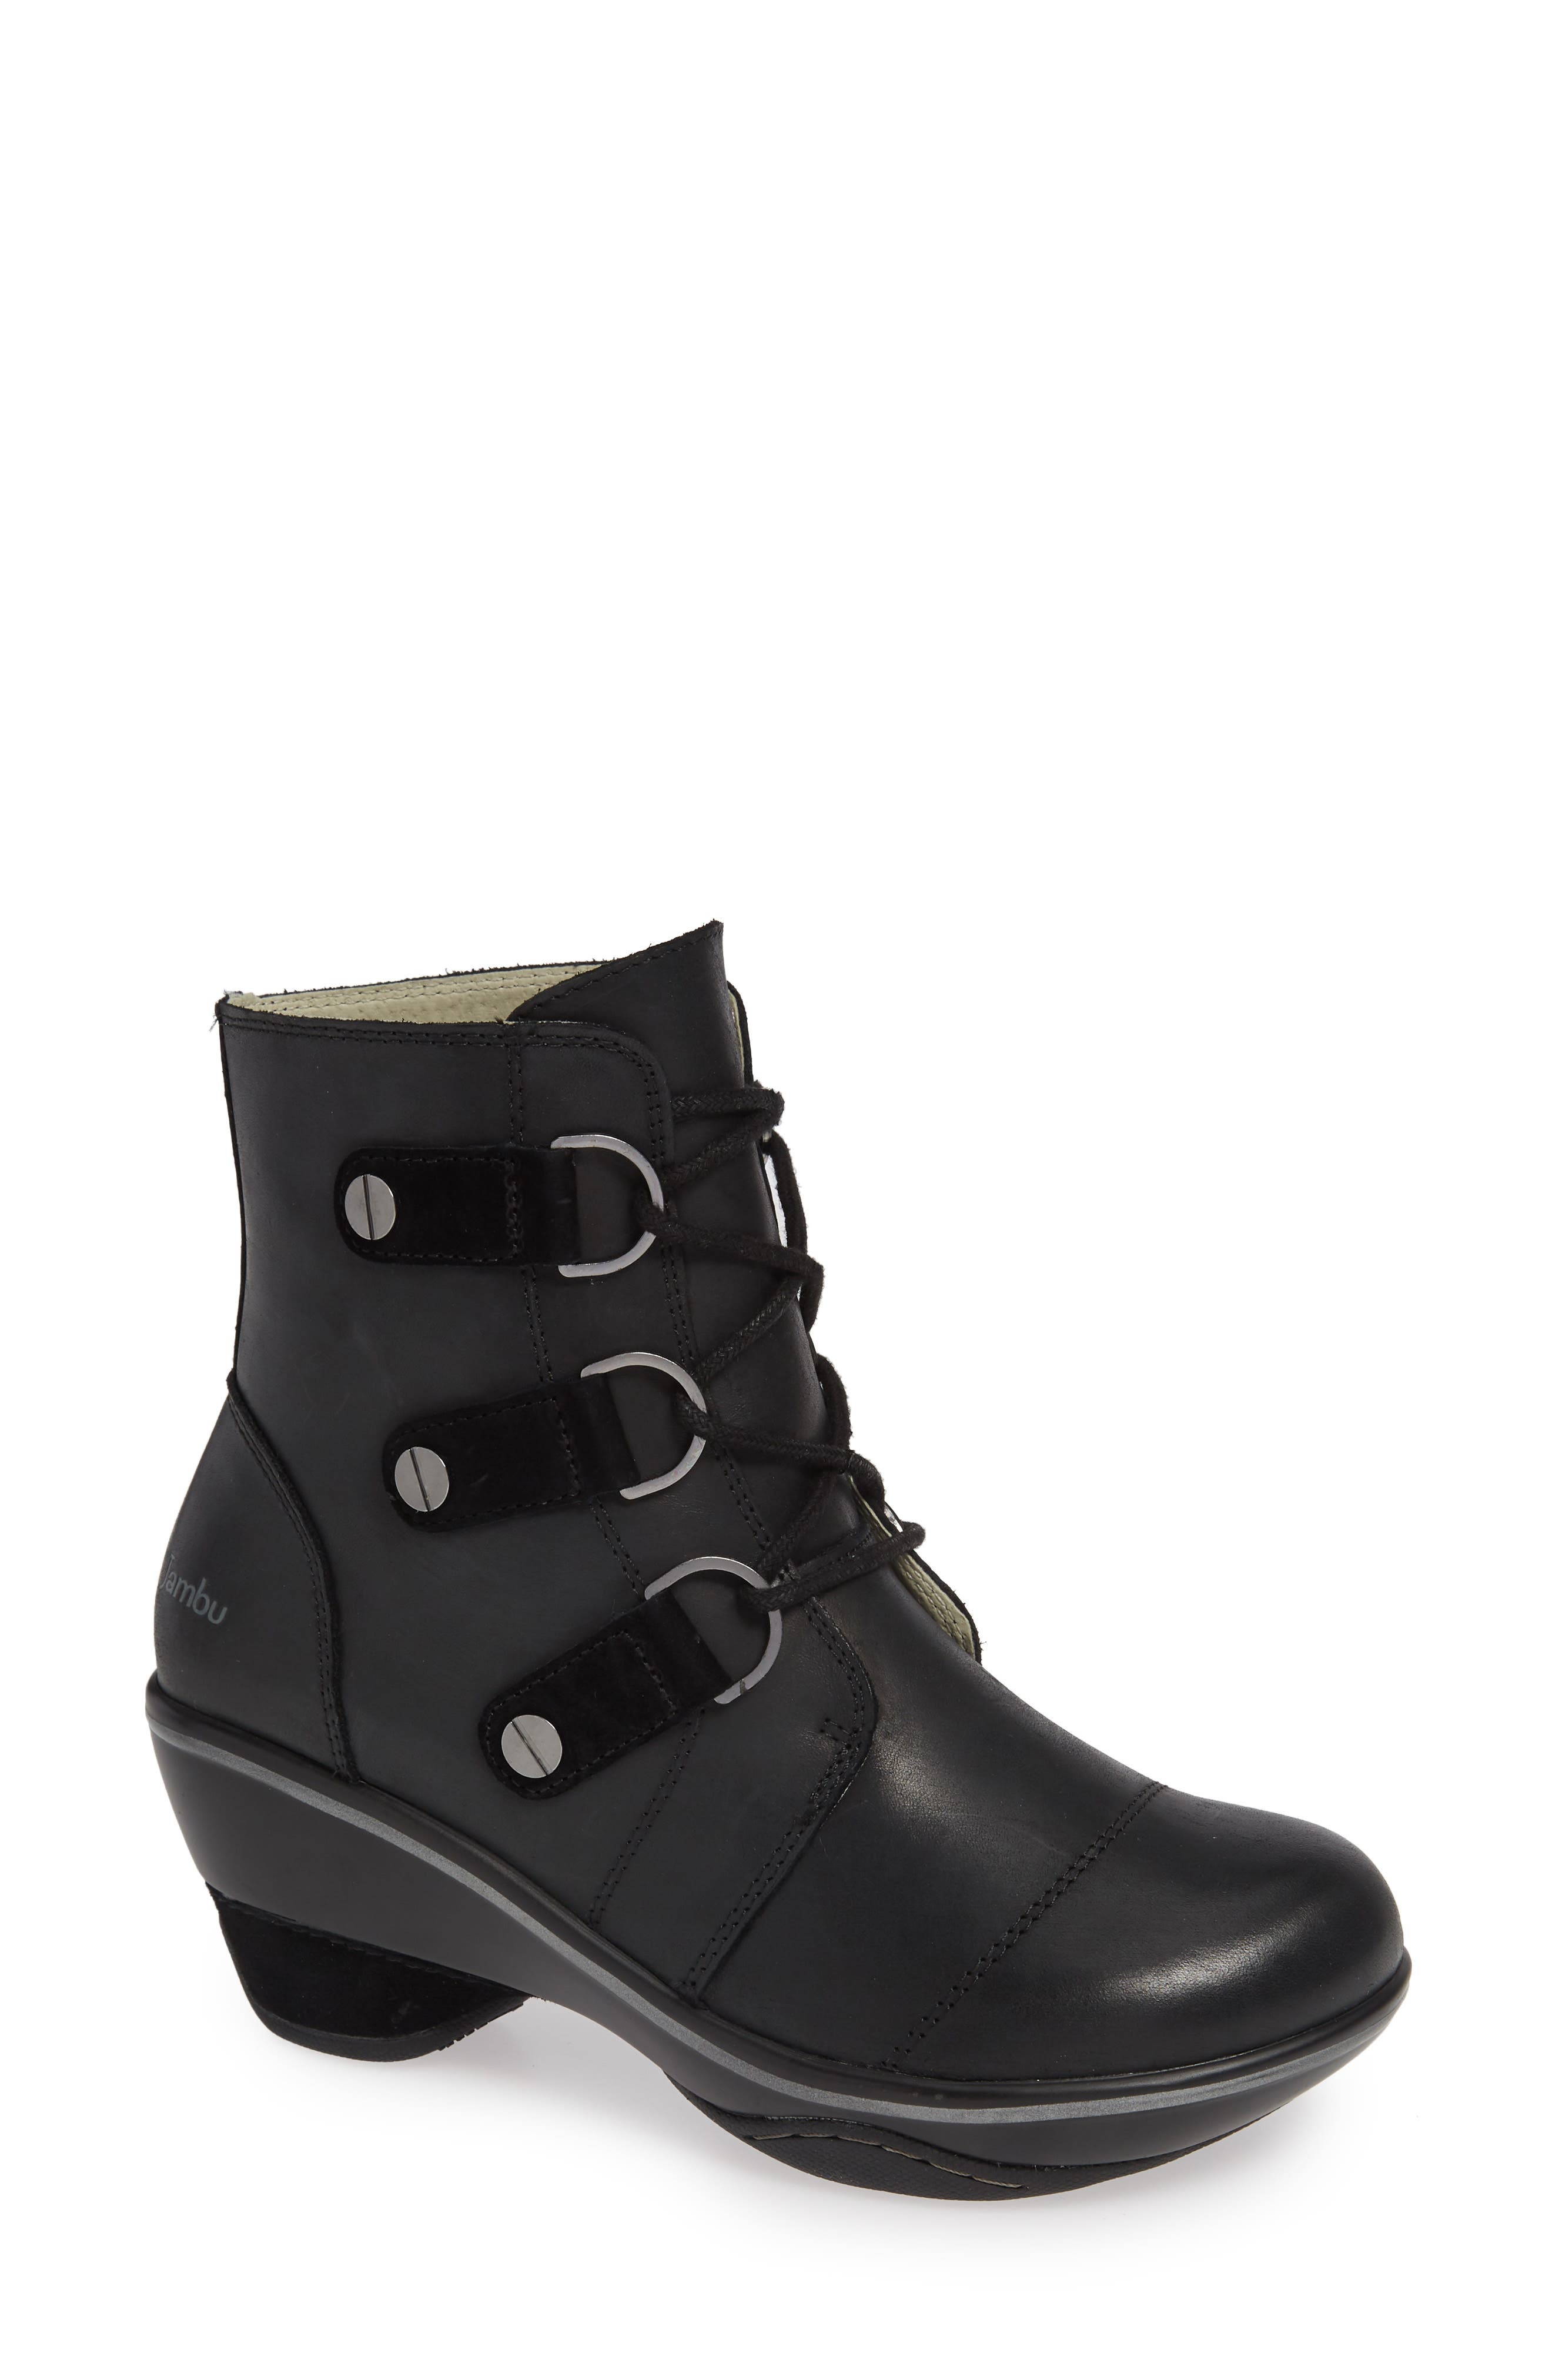 Jambu Emma Lace-Up Bootie- Black